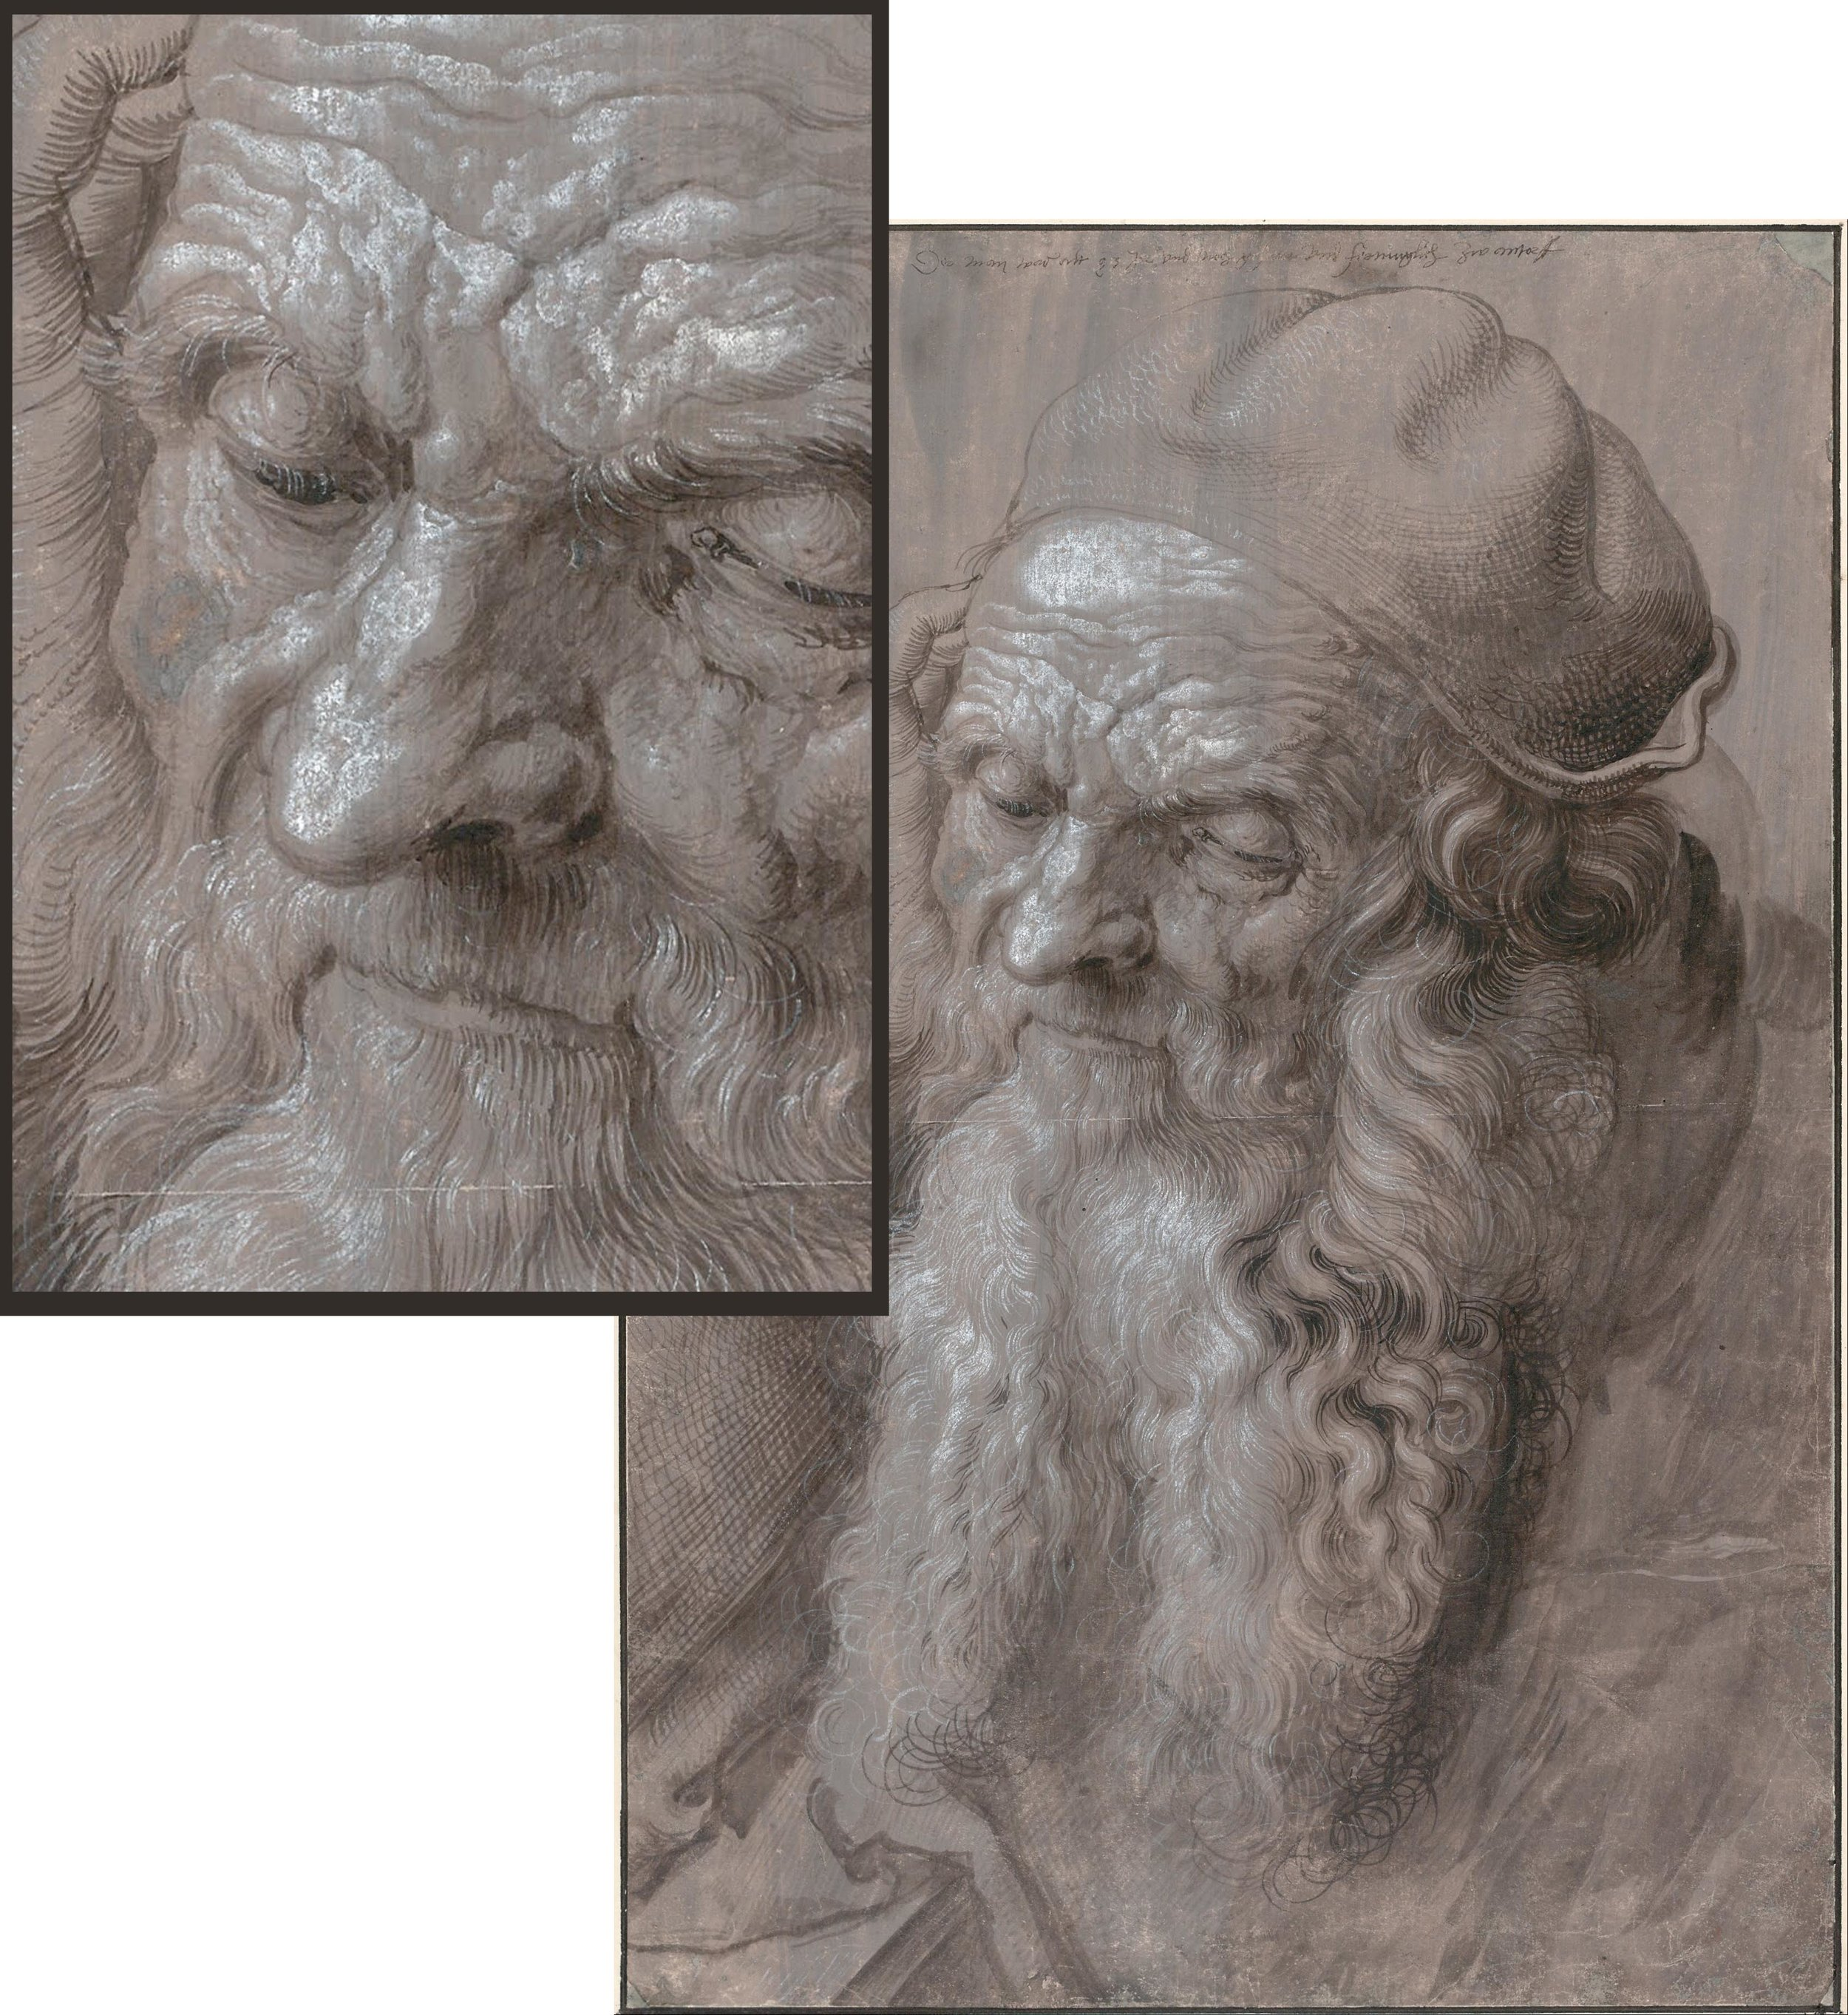 1521. head of an old man by Albrecht Dürer - with inset showing detail